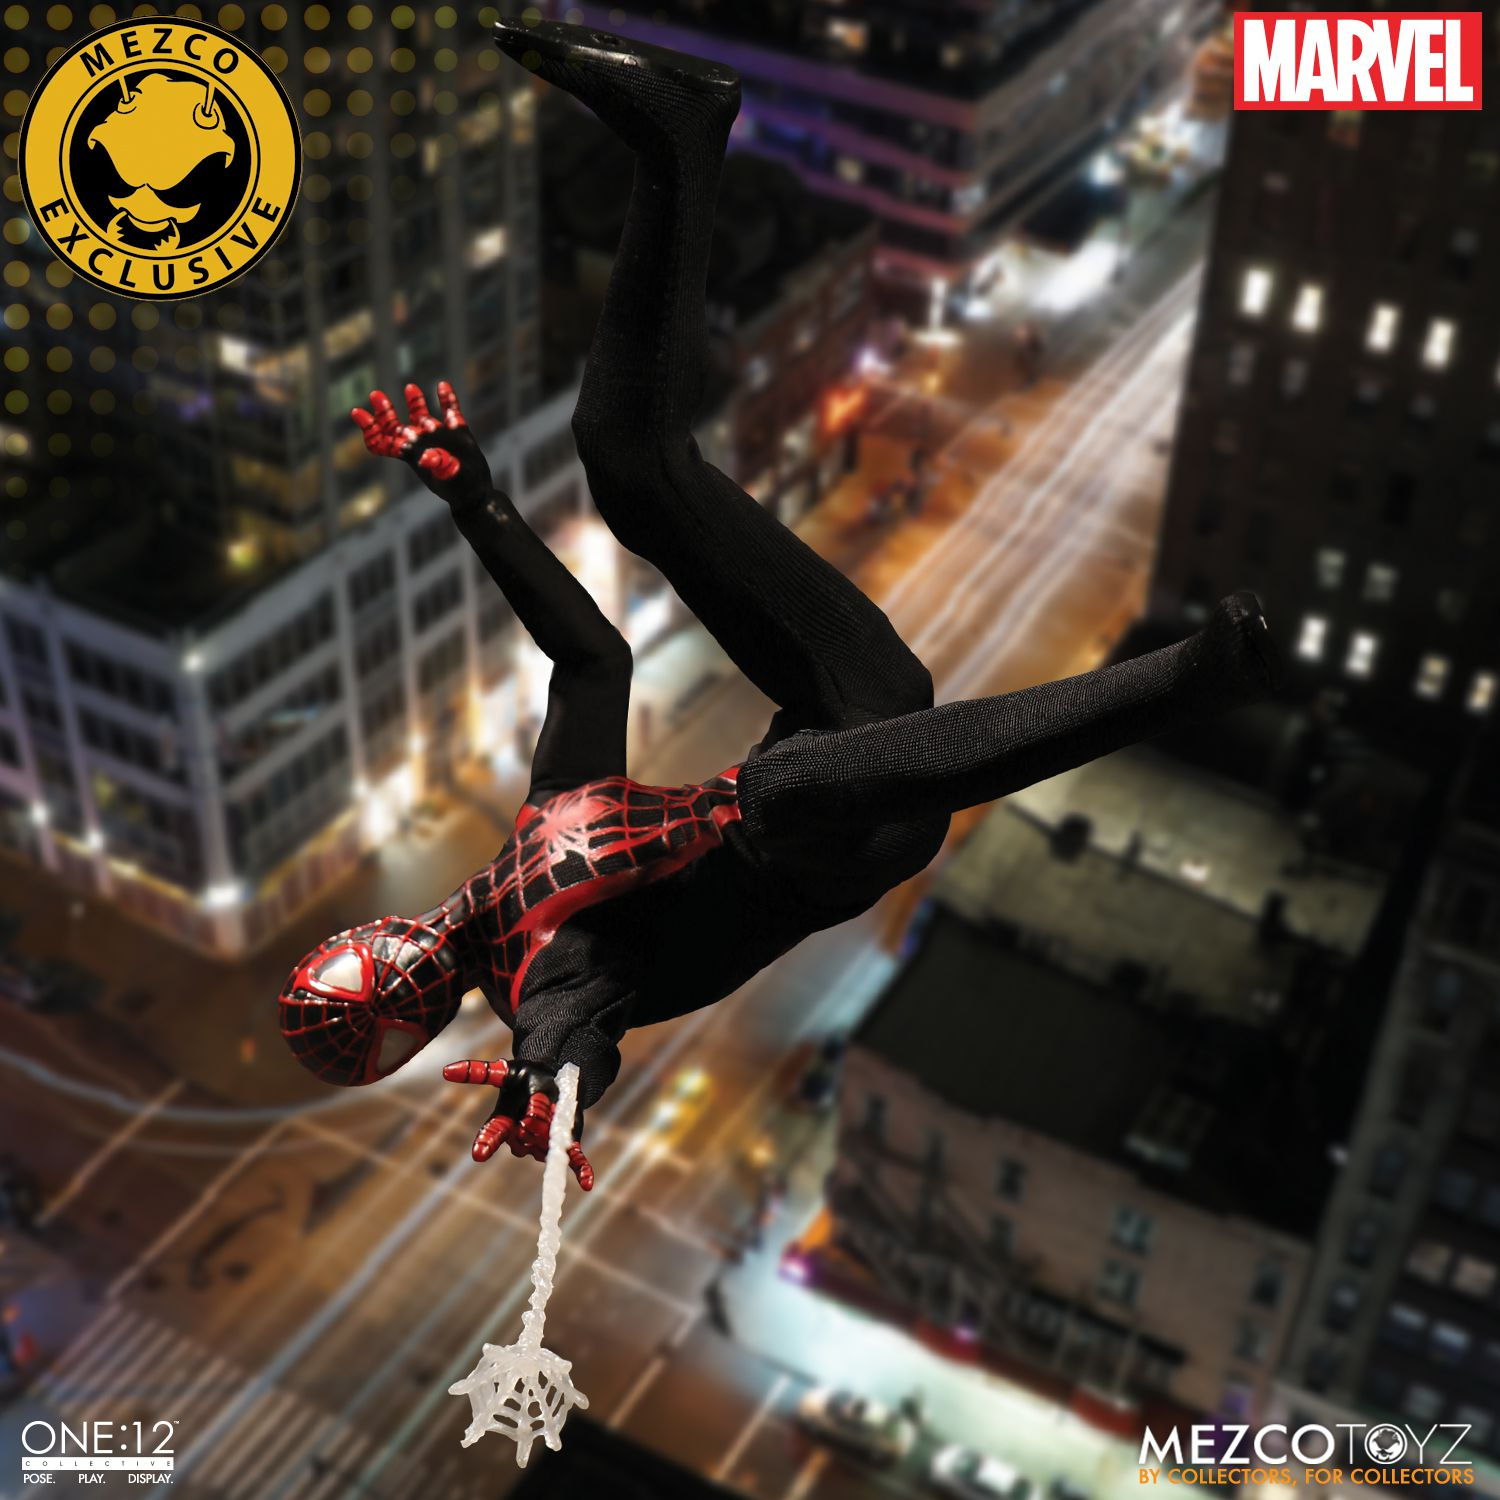 775ded579 SDCC 2017 Exclusive Ultimate Spider-Man Miles Morales One:12 Collective  Marvel Action Figure by Mezco Toyz